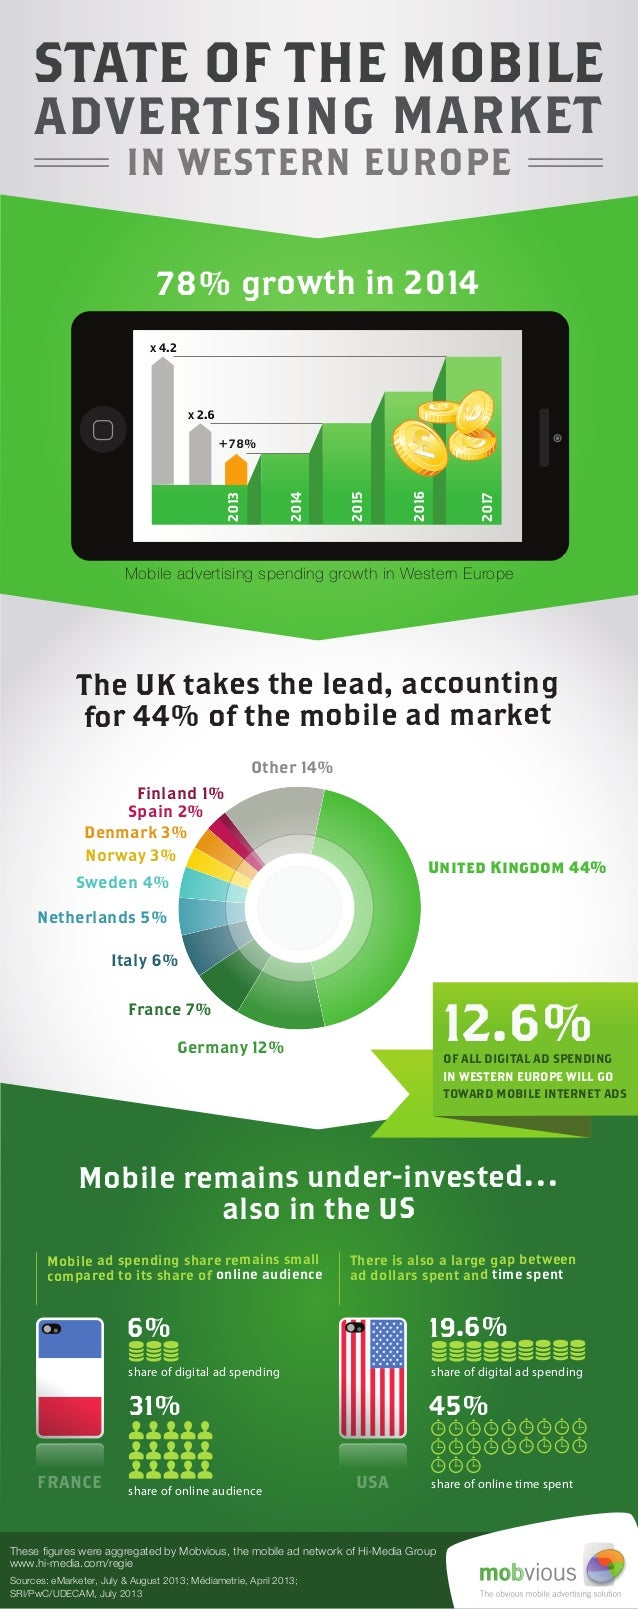 The UK takes the lead, accounting for 44% of the mobile ad market Spain 2% United Kingdom 44% Germany 12% France 7% Other ...